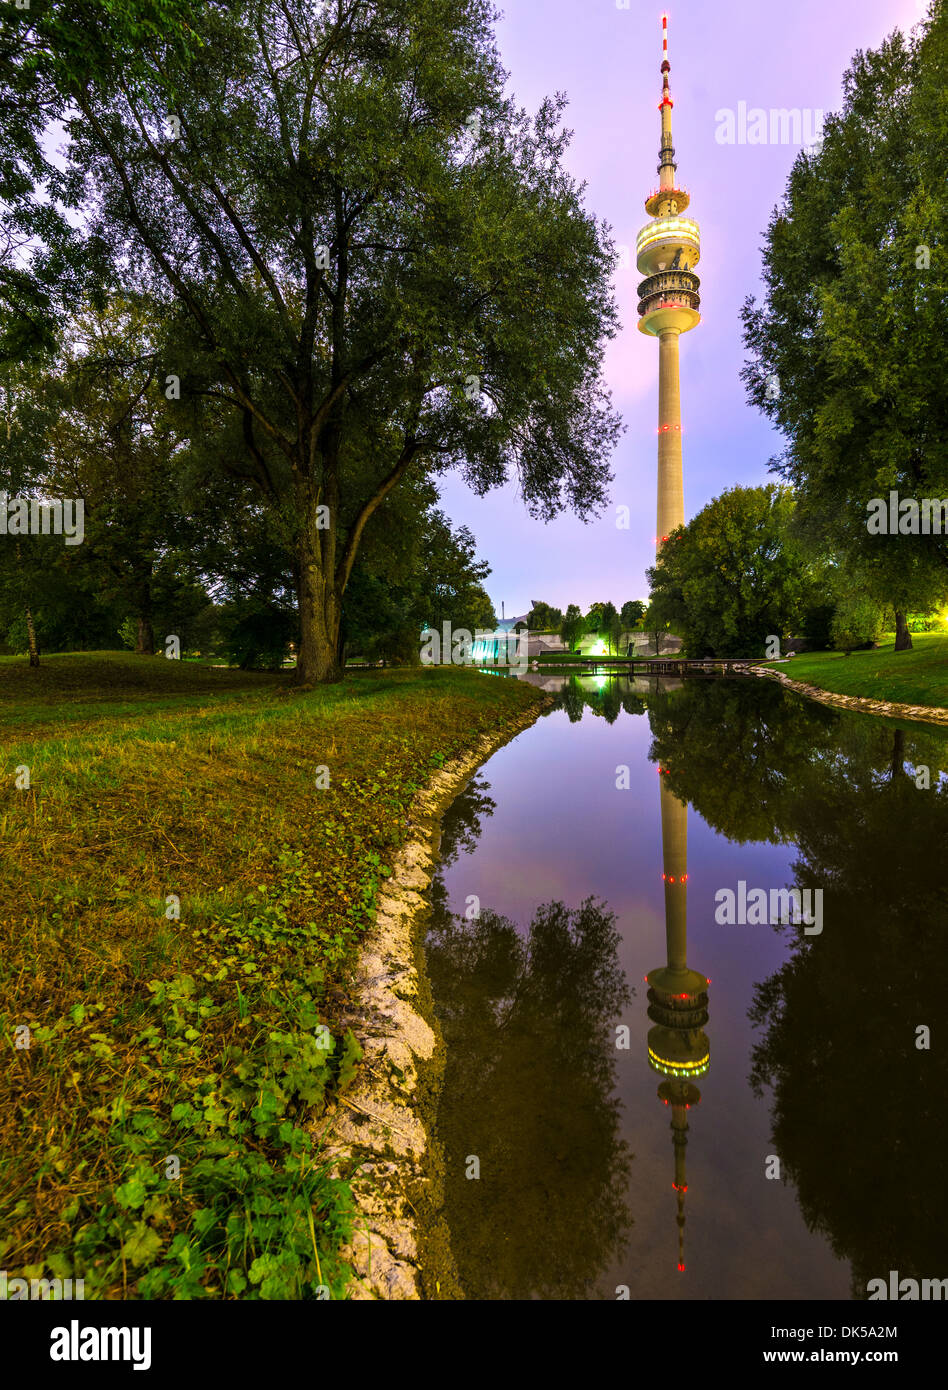 Olympia Park in Munich, Germany - Stock Image